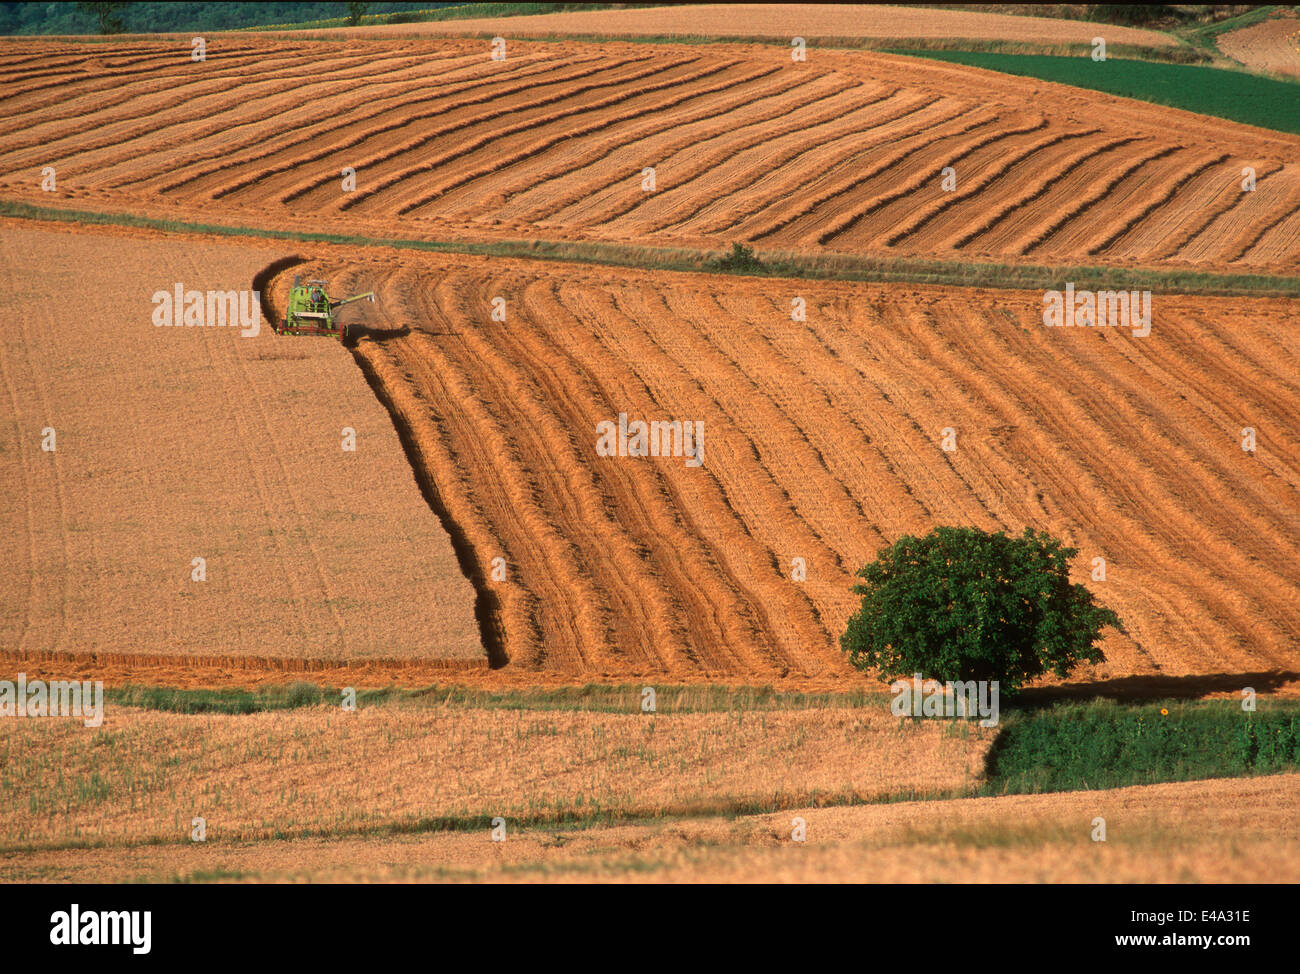 Wheat harvest in Limagne, Auvergne, France, Europe - Stock Image